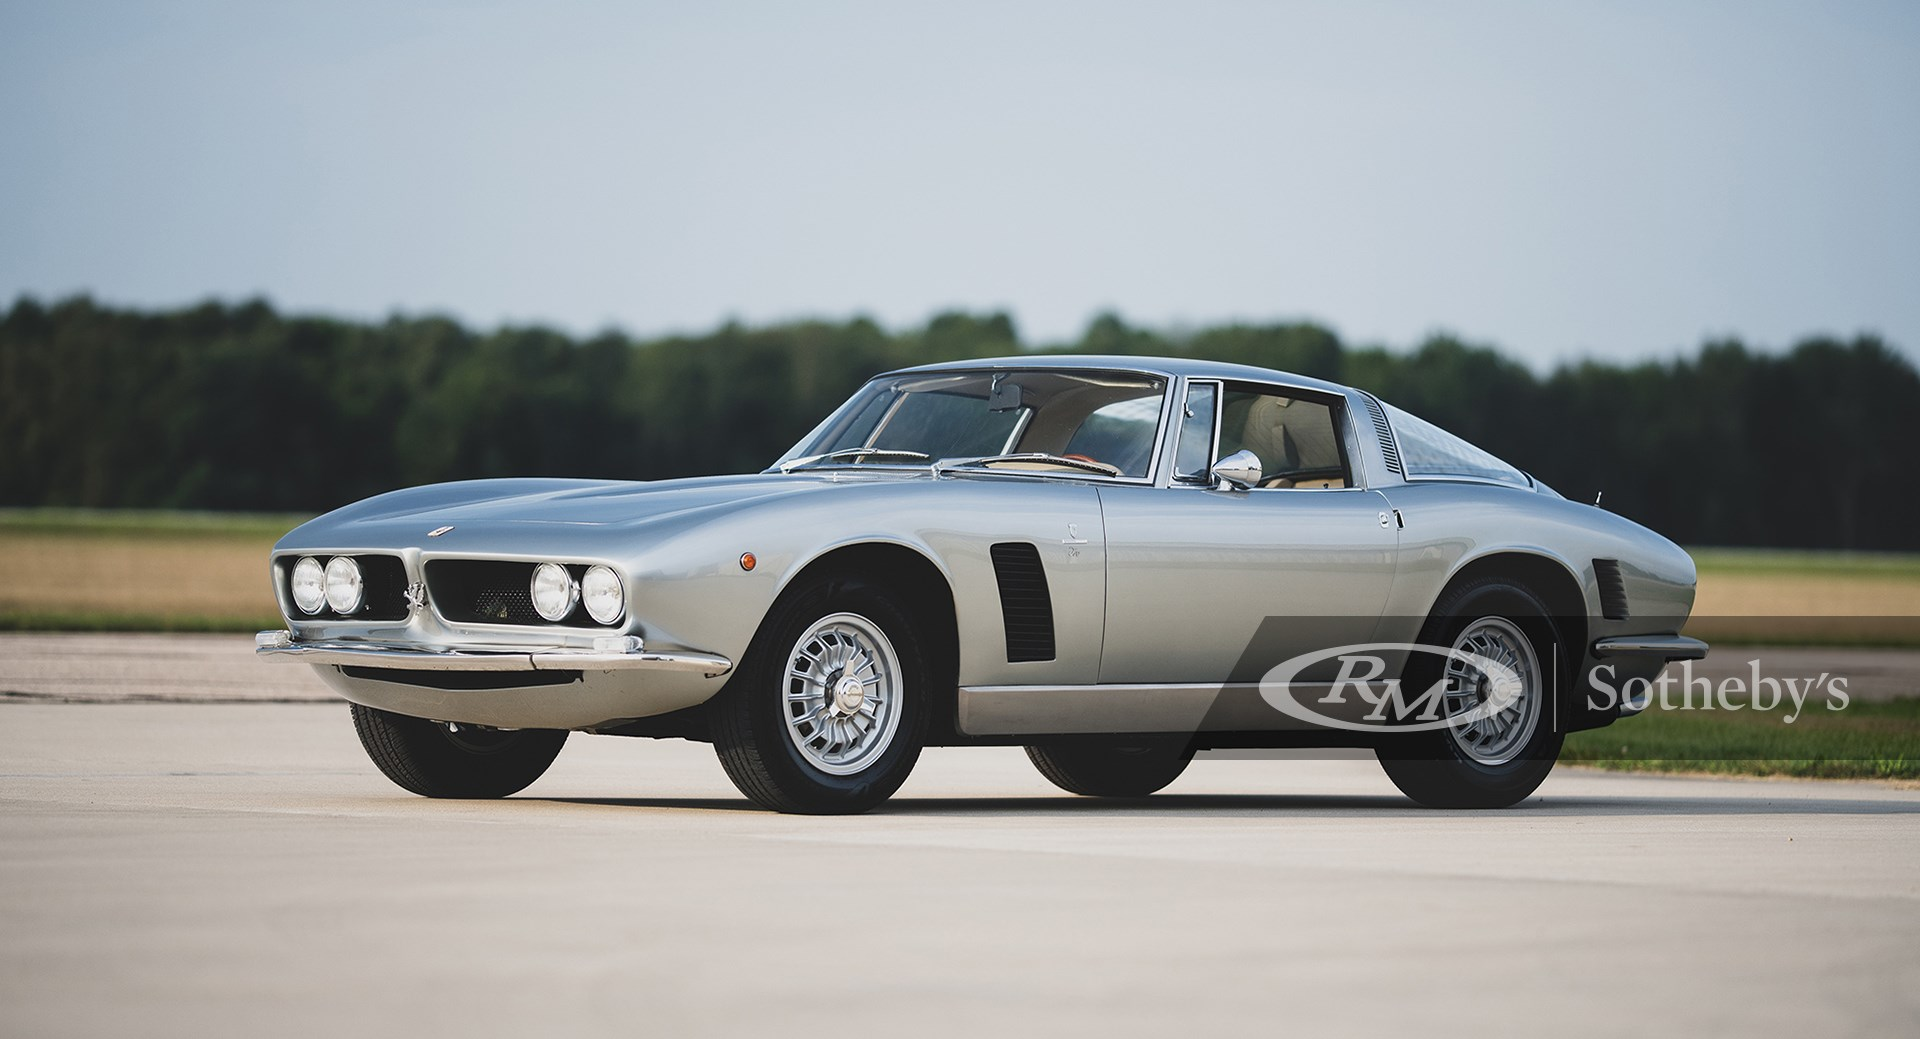 RM Sotheby's The Elkhart Collection 2020, 1968 Iso Grifo GL Series I by Bertone